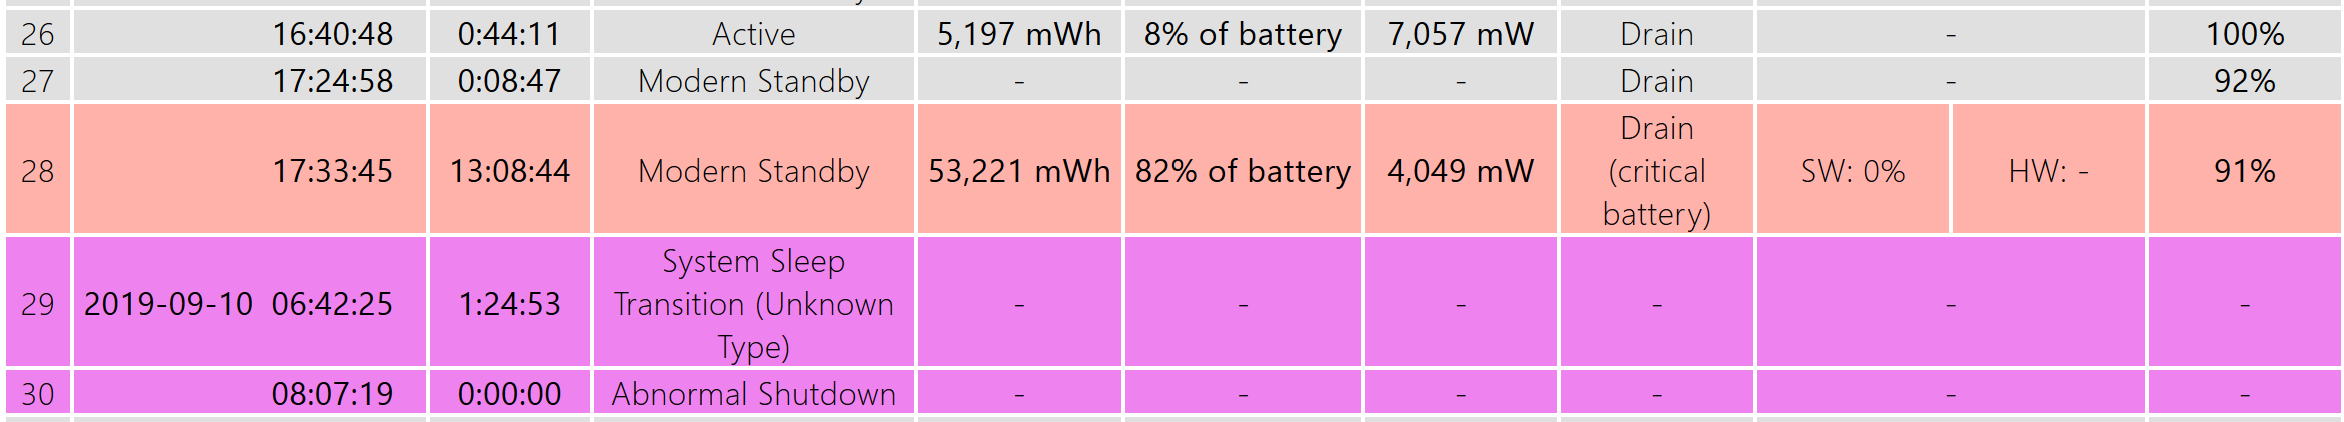 Section with 82% battery usage